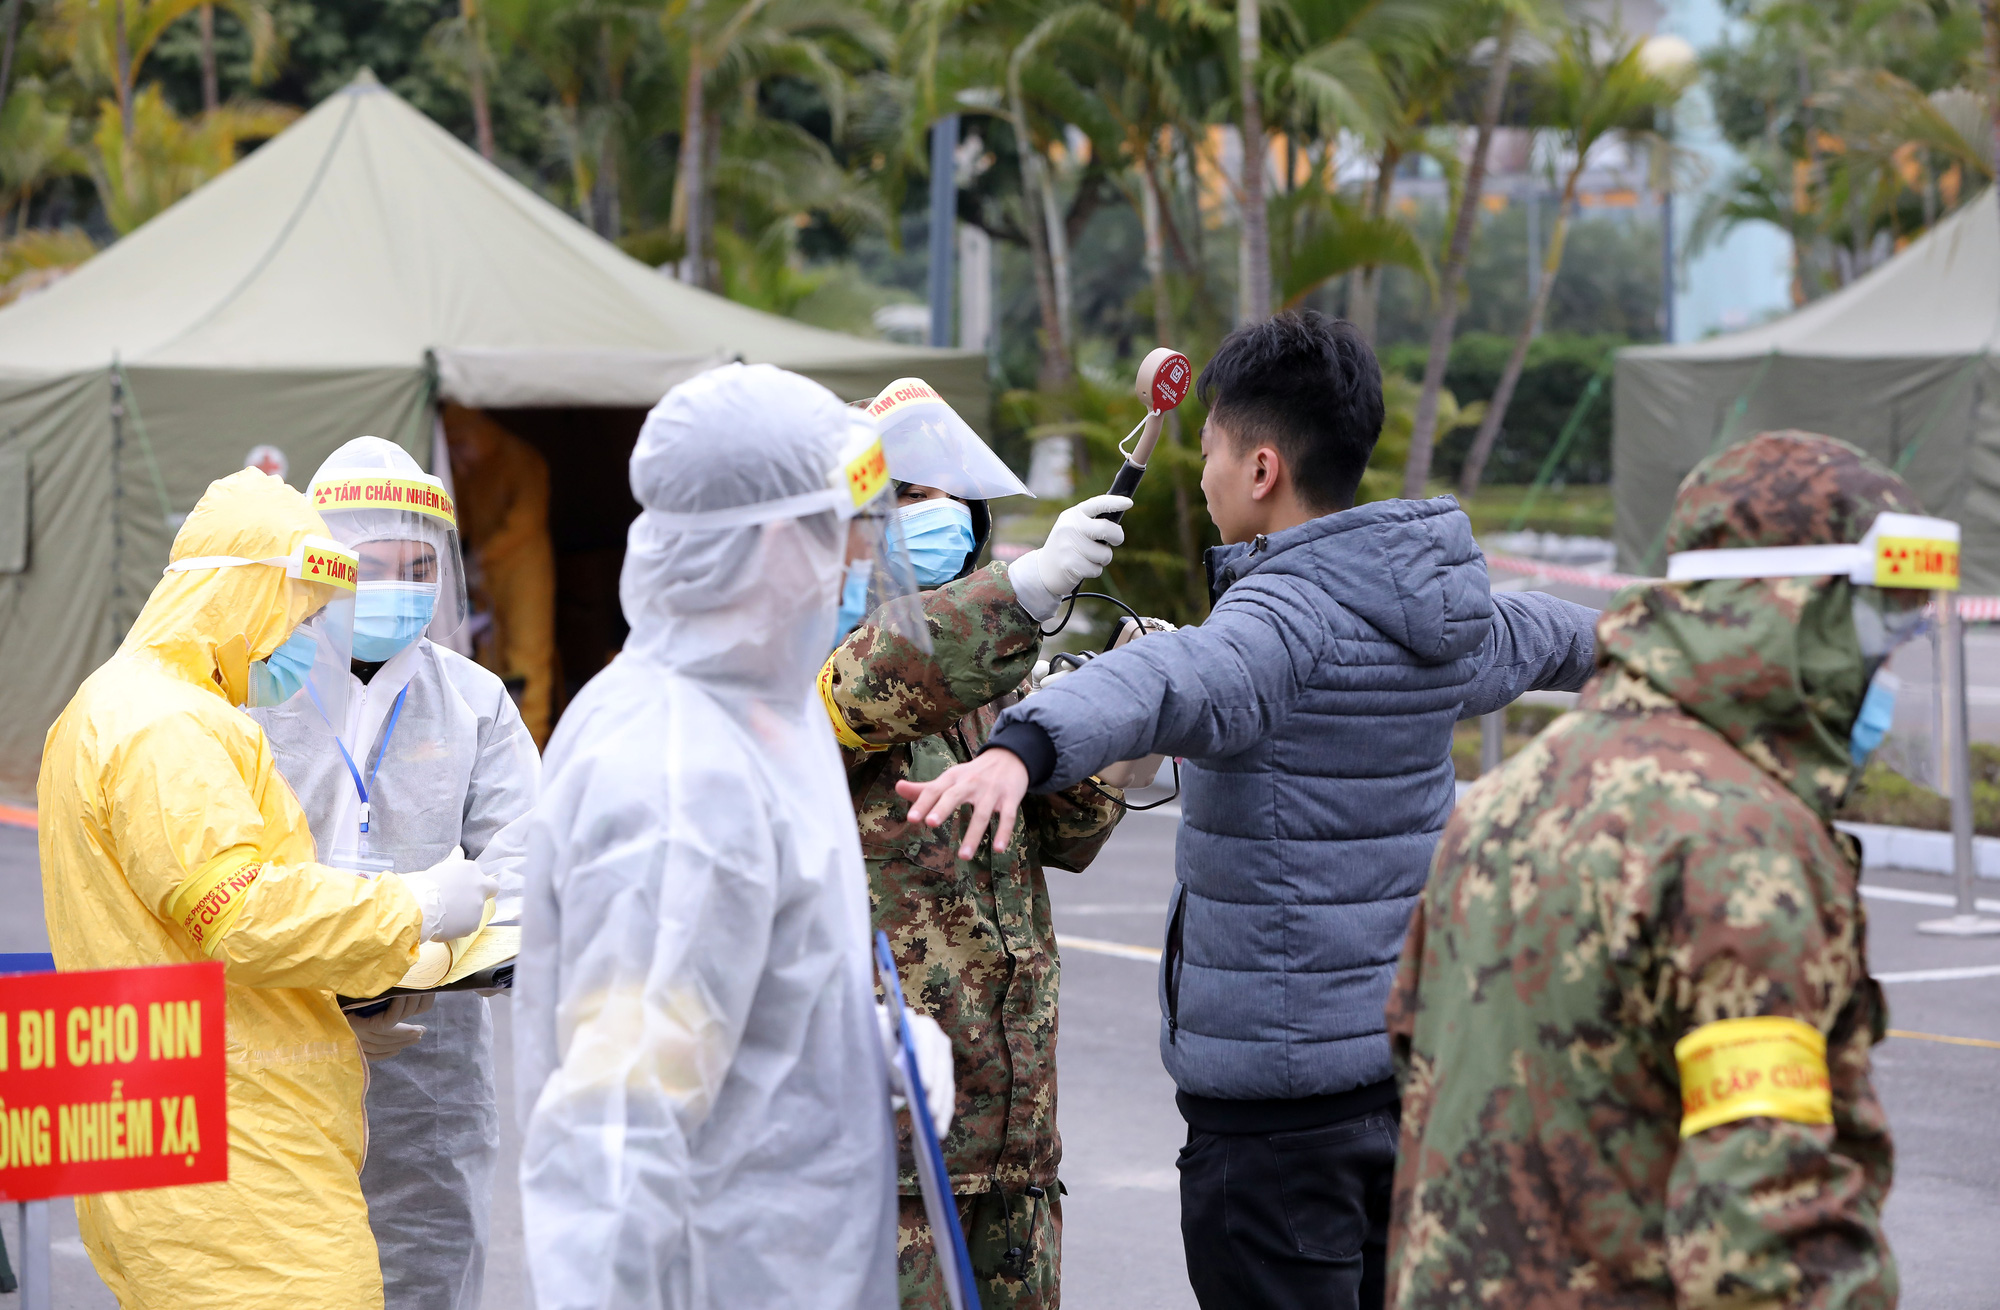 An area for radioactive contamination treatment is set up during an exercise to prepare for the National Party Congress in Hanoi, January 10, 2021. Photo: Viet Dung / Tuoi Tre